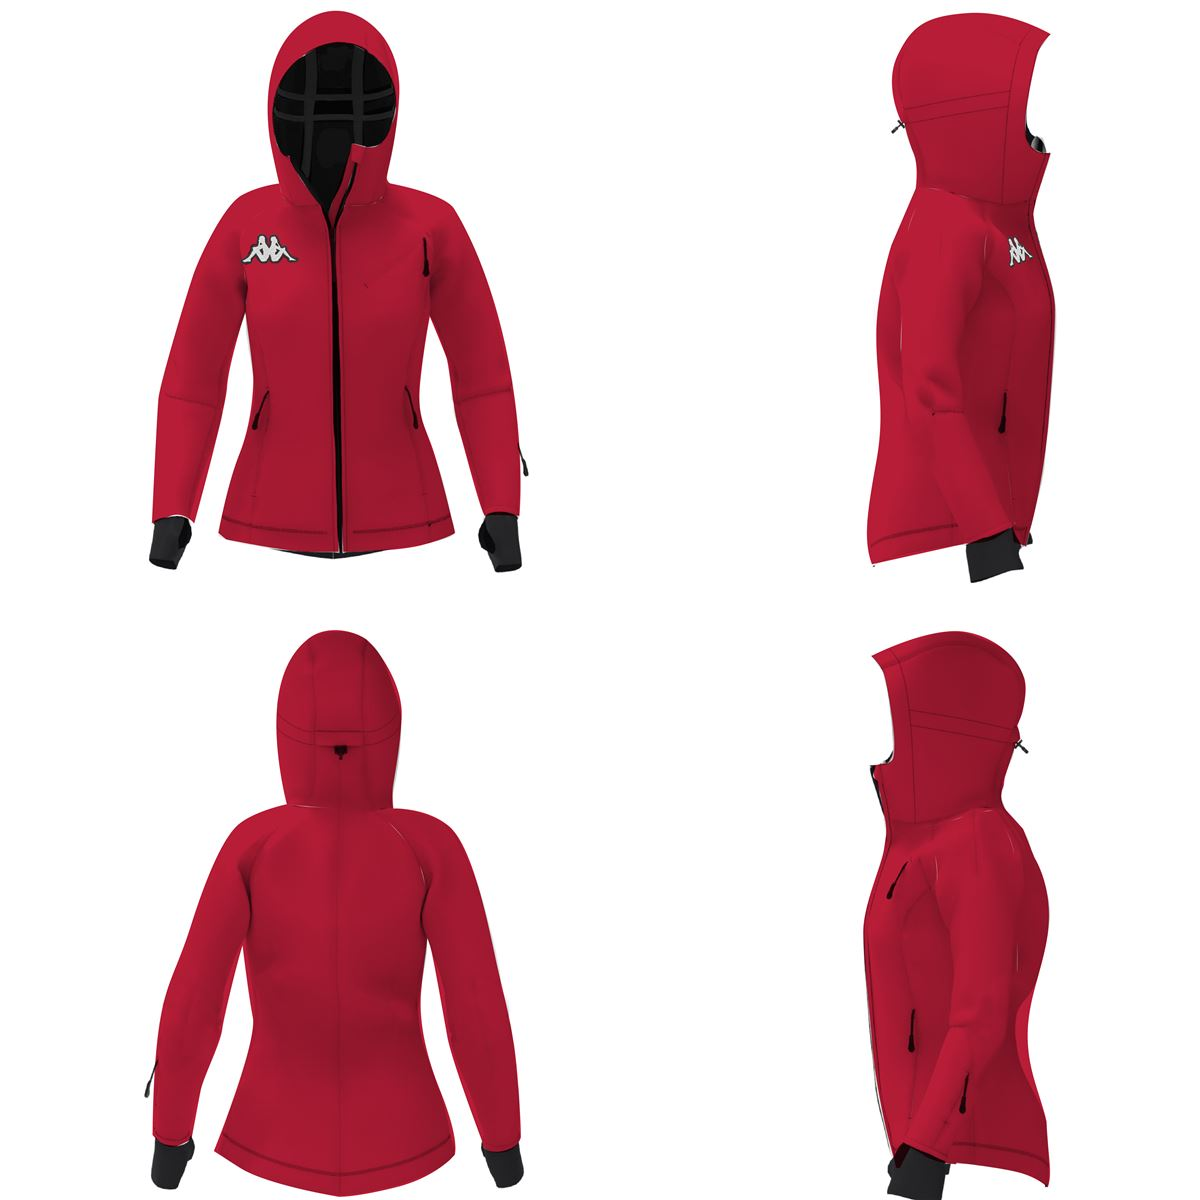 Kappa Short Jacket Ski sport Woman